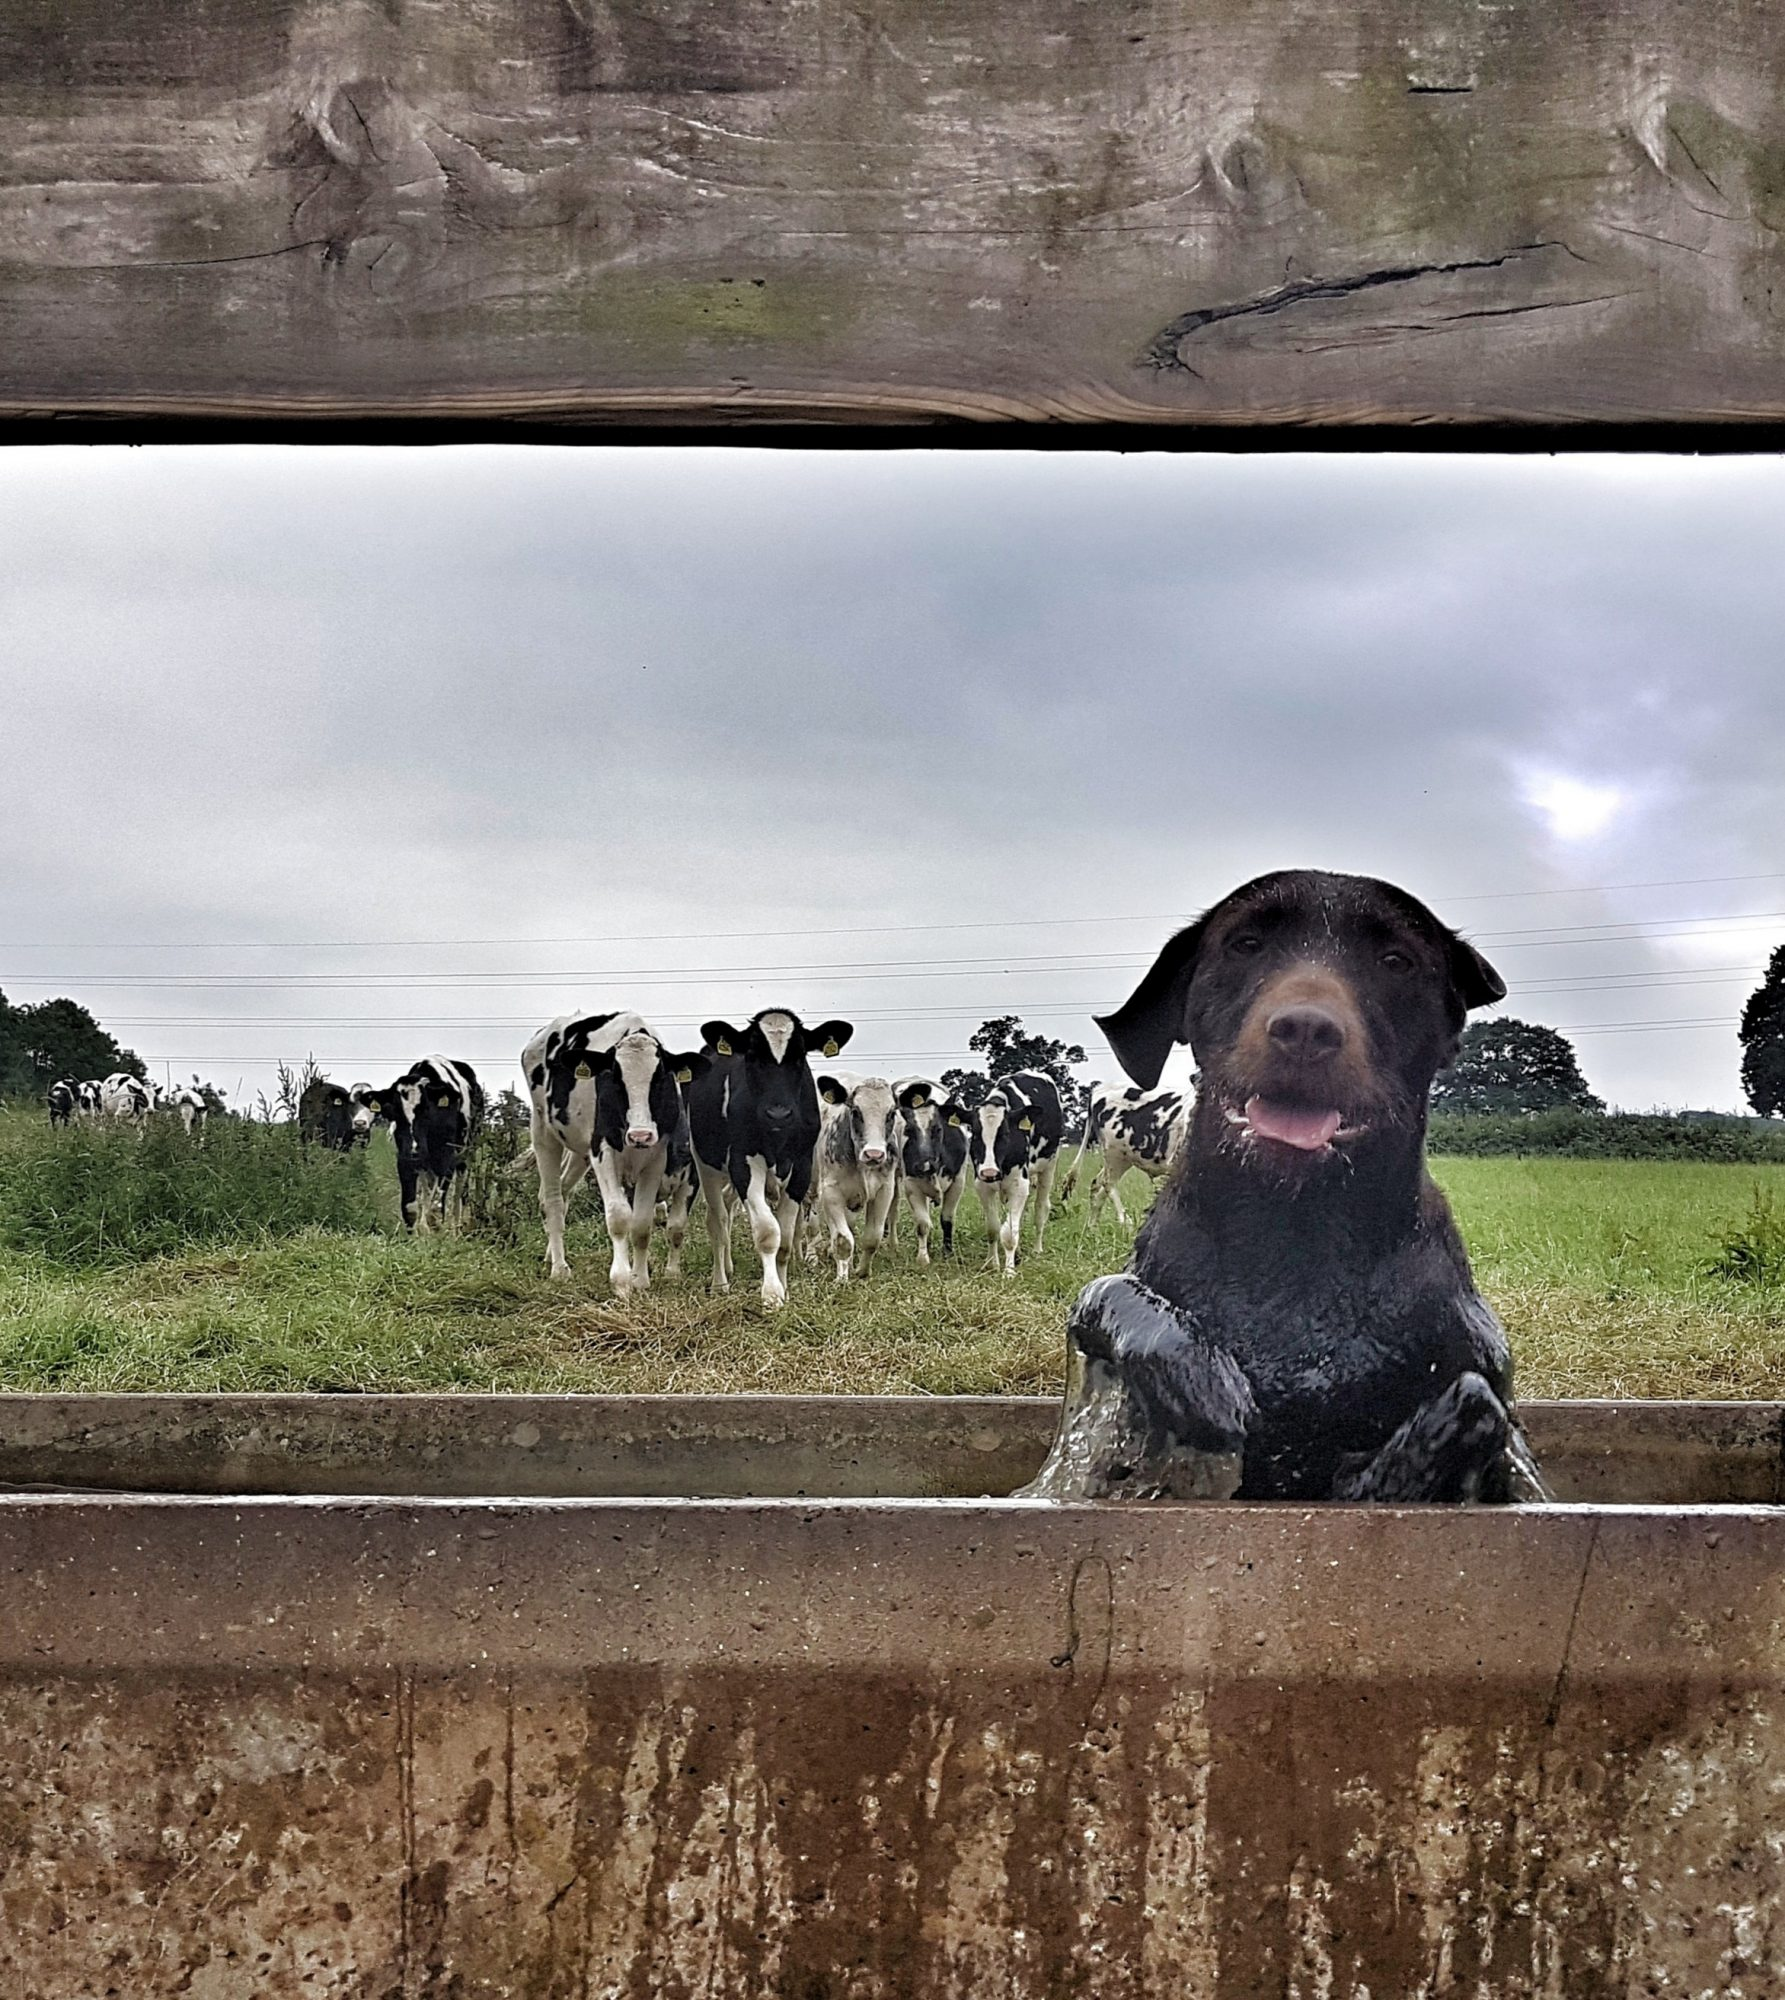 dog in trough in front of cows